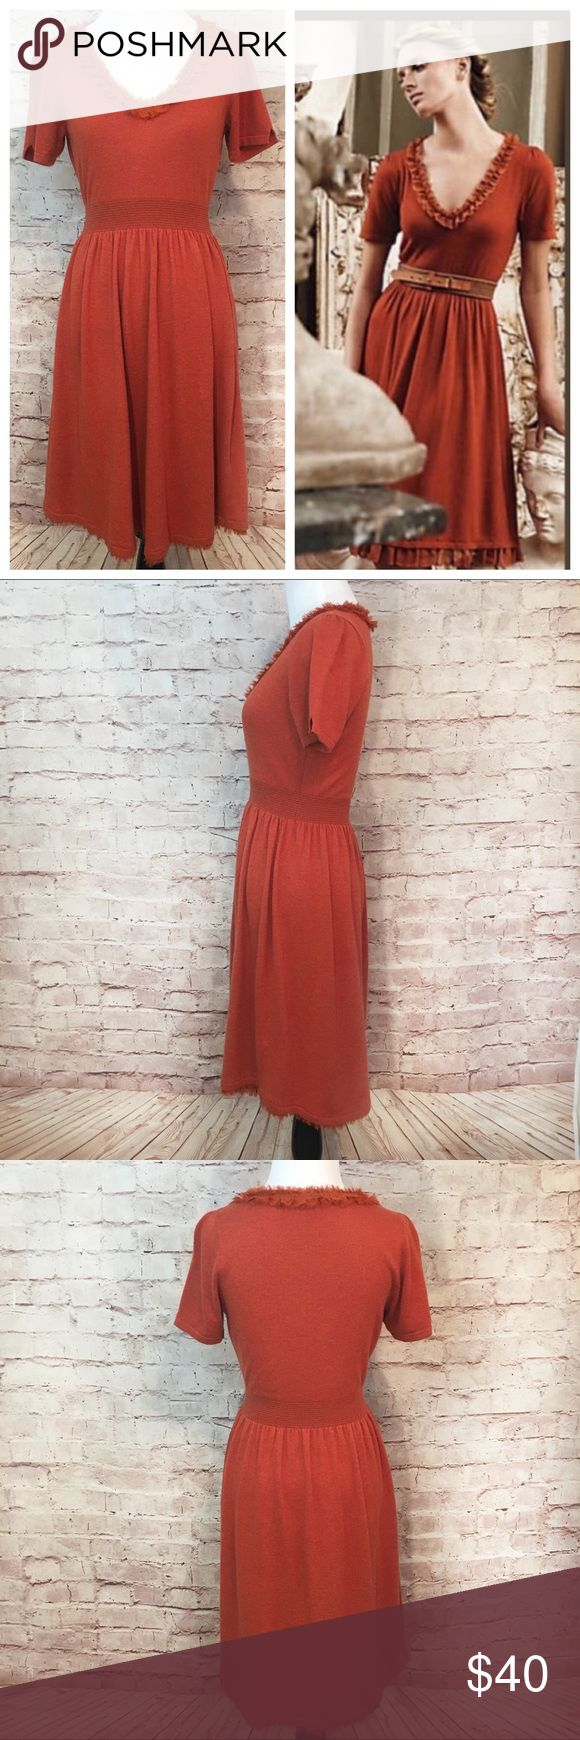 """Isabella Sinclair Anthropologie Dress Isabella Sinclair pullover burnt orange a-line dress with short sleeves, elastic smocking waist band and chiffon ruffle around the v-neckline and hem from Anthropologie.  Viscose/Nylon/Cotton/Extra fine Wool/Angora.  Size Small. Measurements laying flat: Bust 16.5"""". Length 36"""". Like new condition. No flaws or signs of wear.  (Belt added in the stock photo not included). Anthropologie Dresses"""